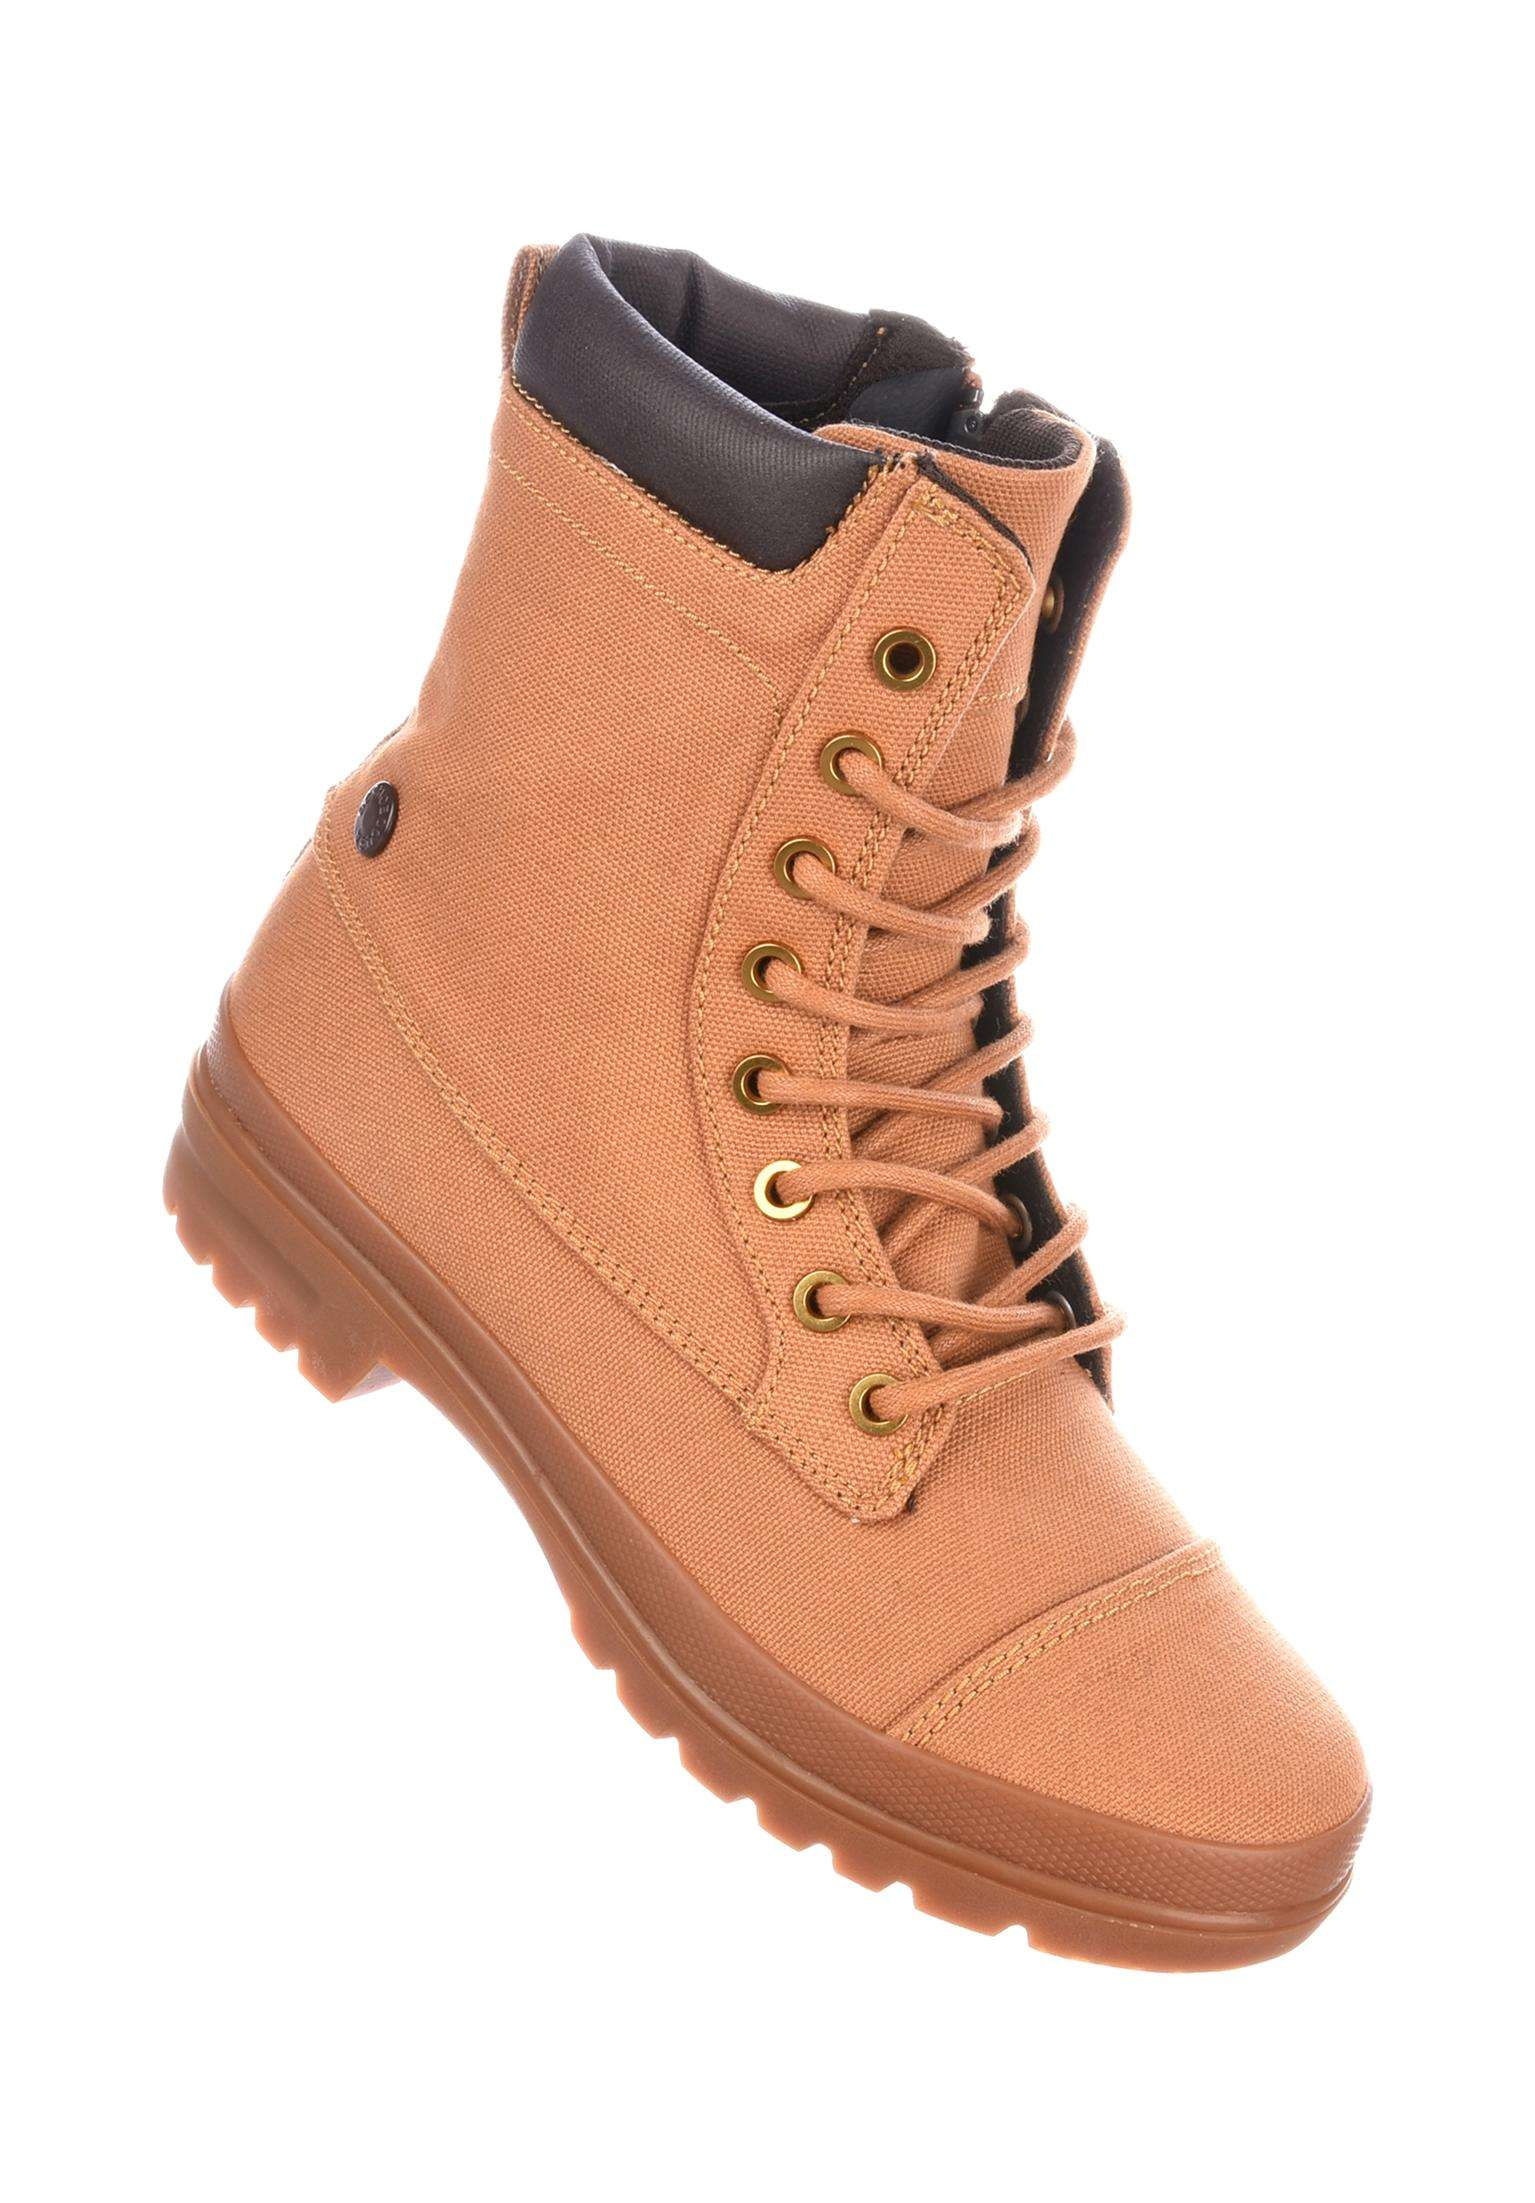 485c27a79c4 Amnesti TX DC Shoes All Shoes in wheat for Women